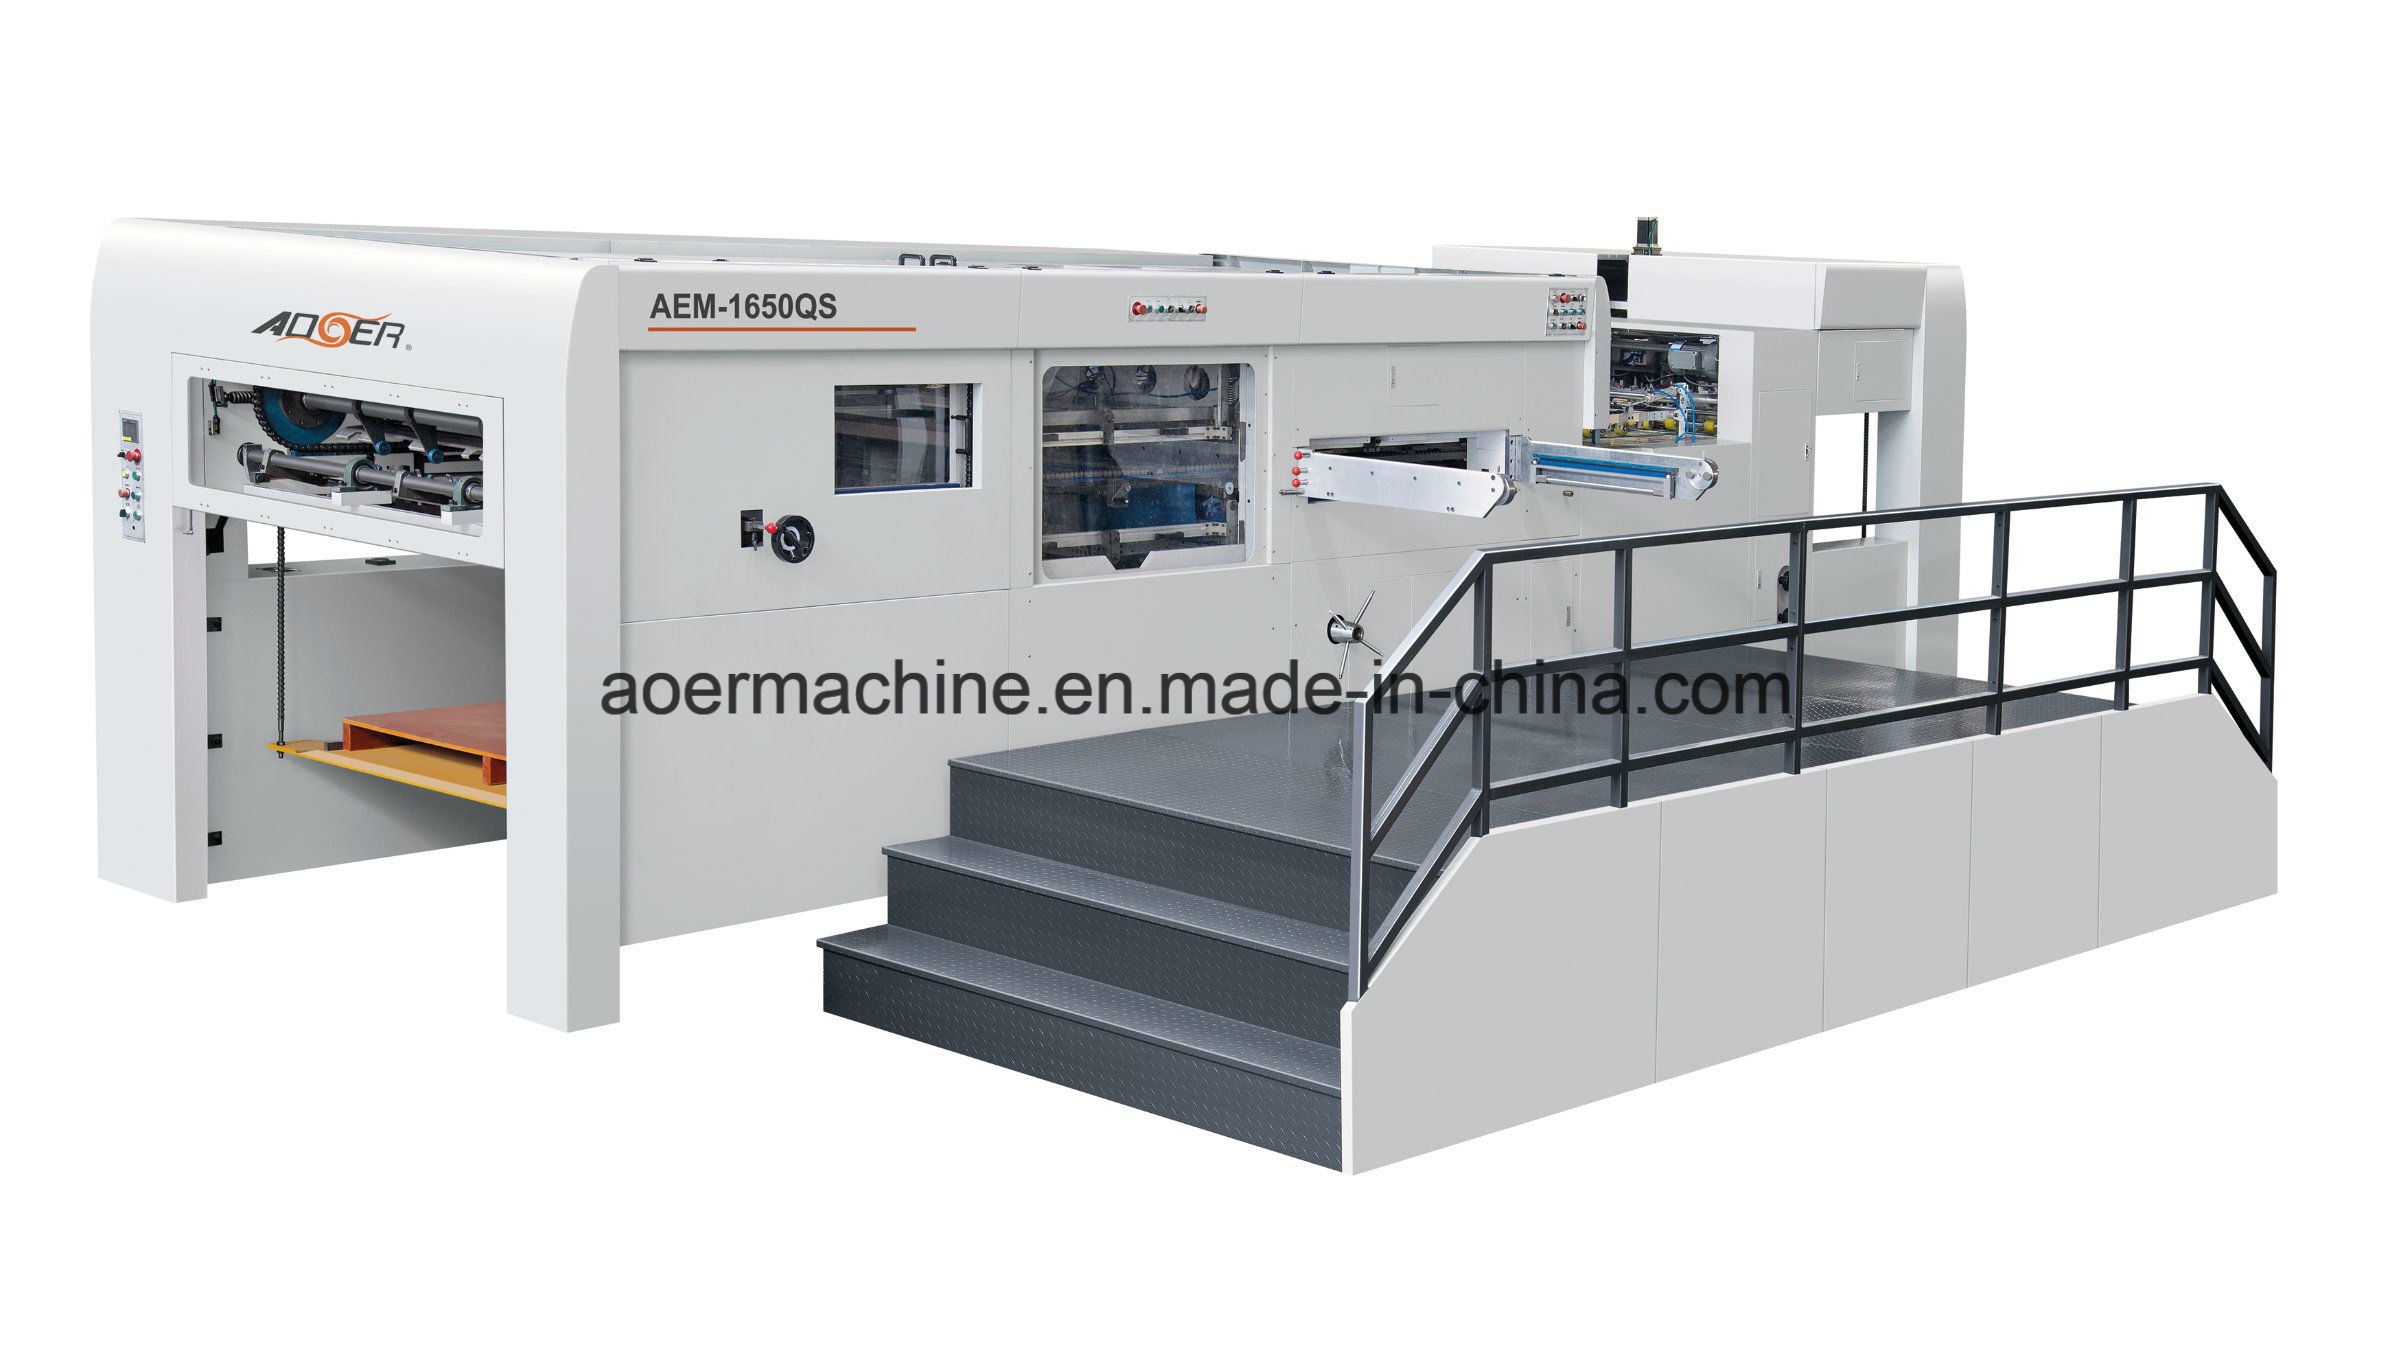 AEM-1650S Manual Automatic Dual Purpose Die Cutting Machine